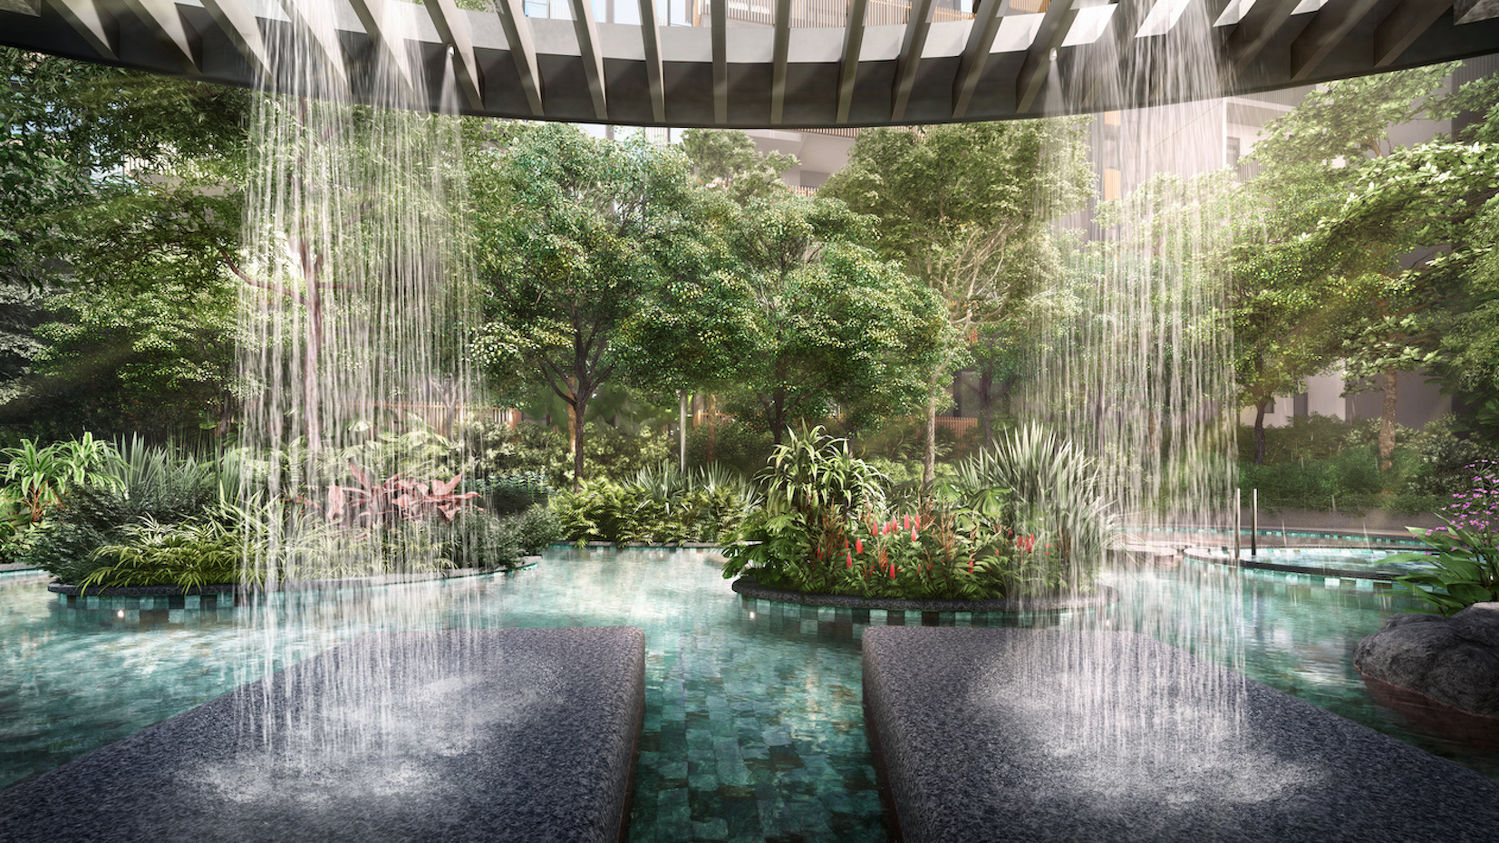 Hydrotherapy spa pool - EDGEPROP SINGAPORE